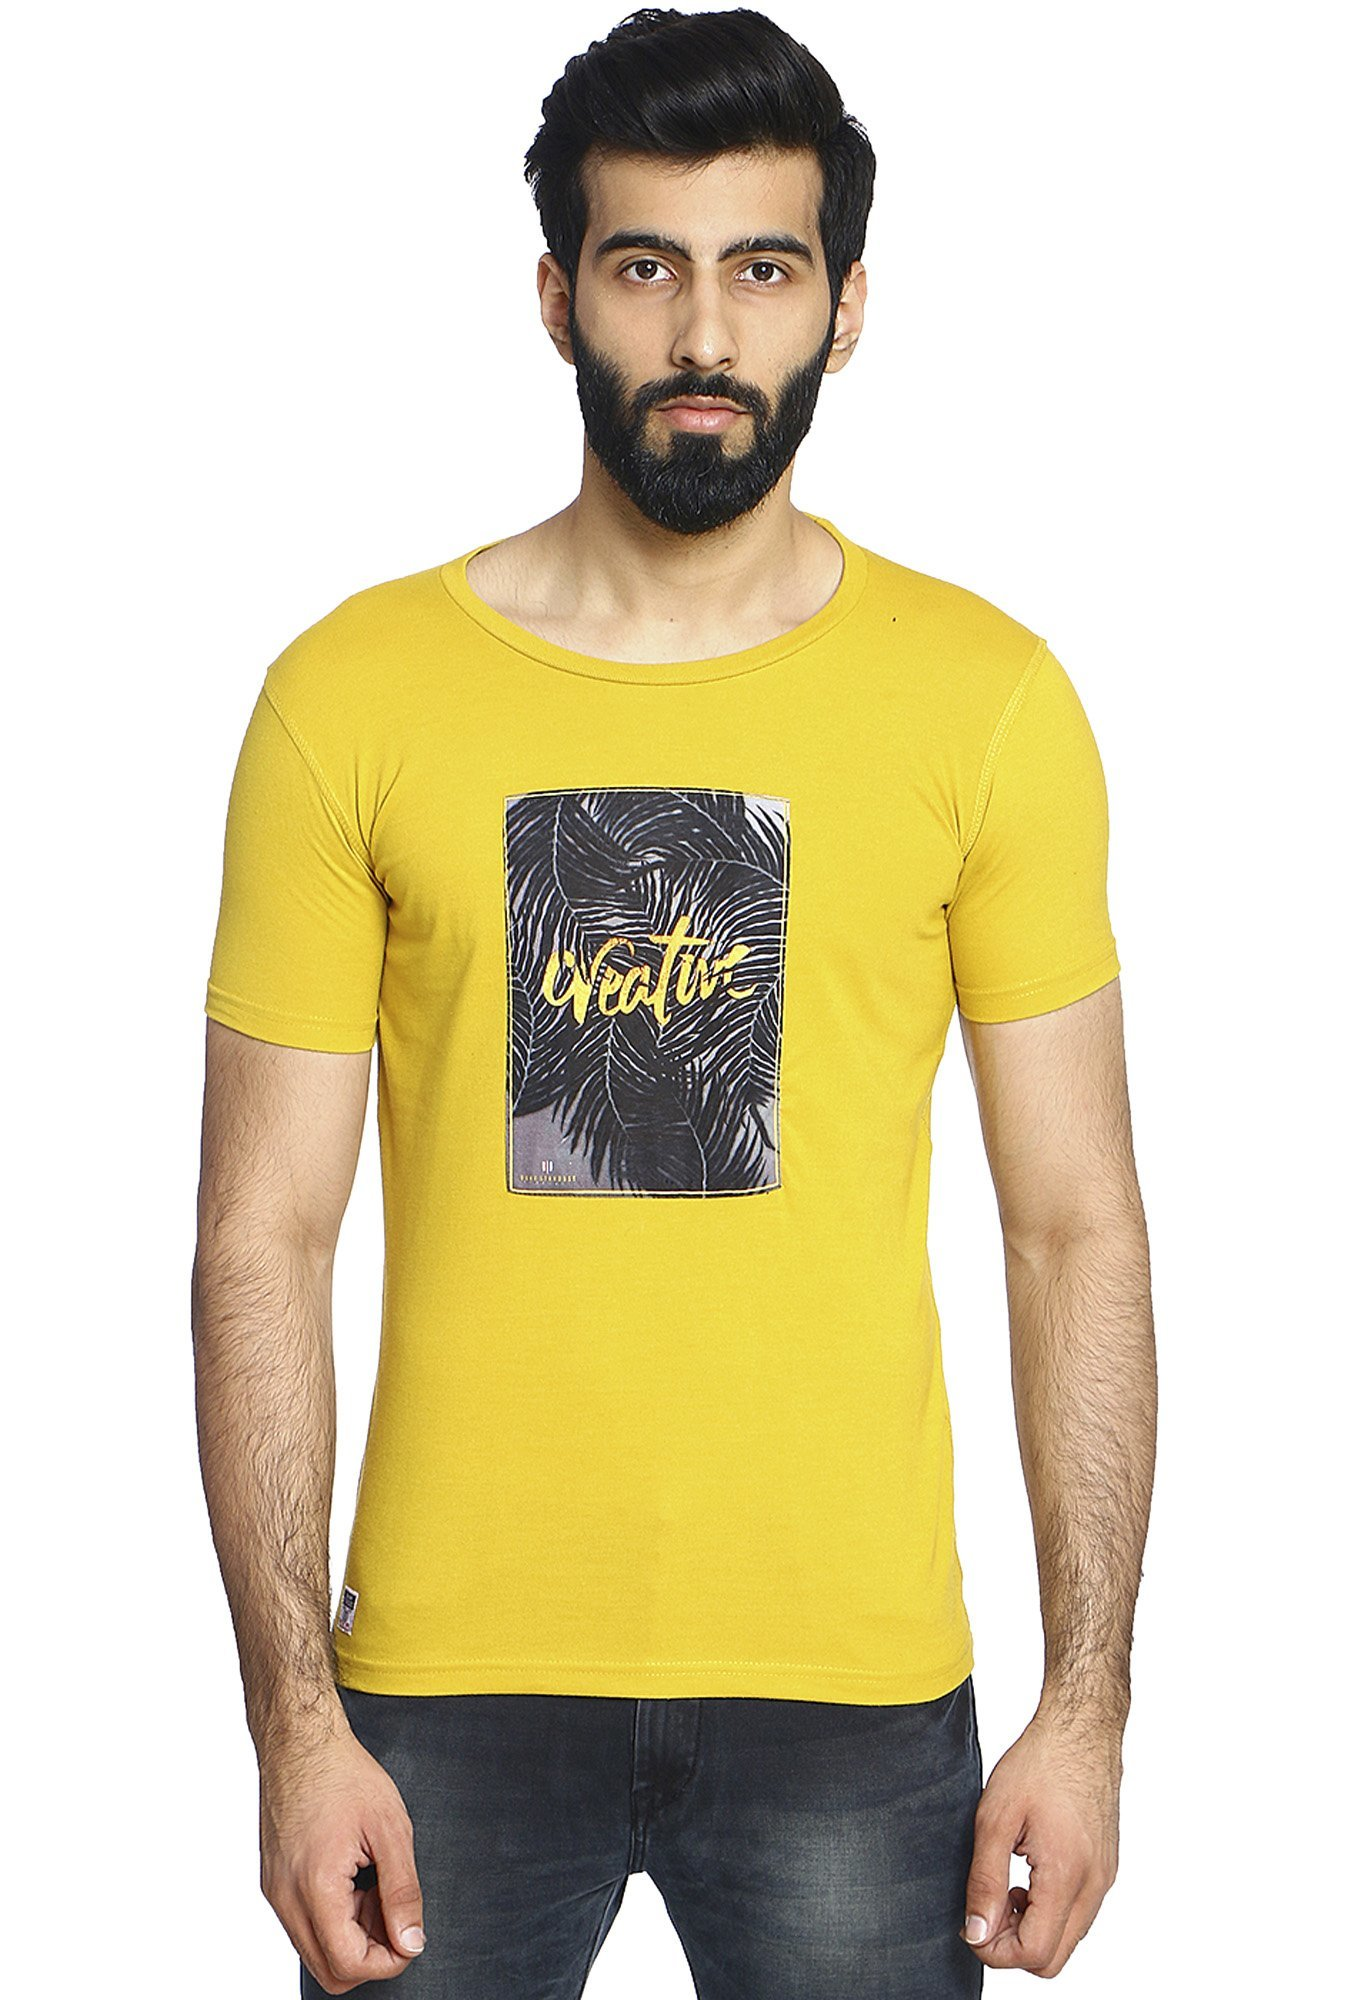 Duke Mustard Printed Round Neck T-Shirt